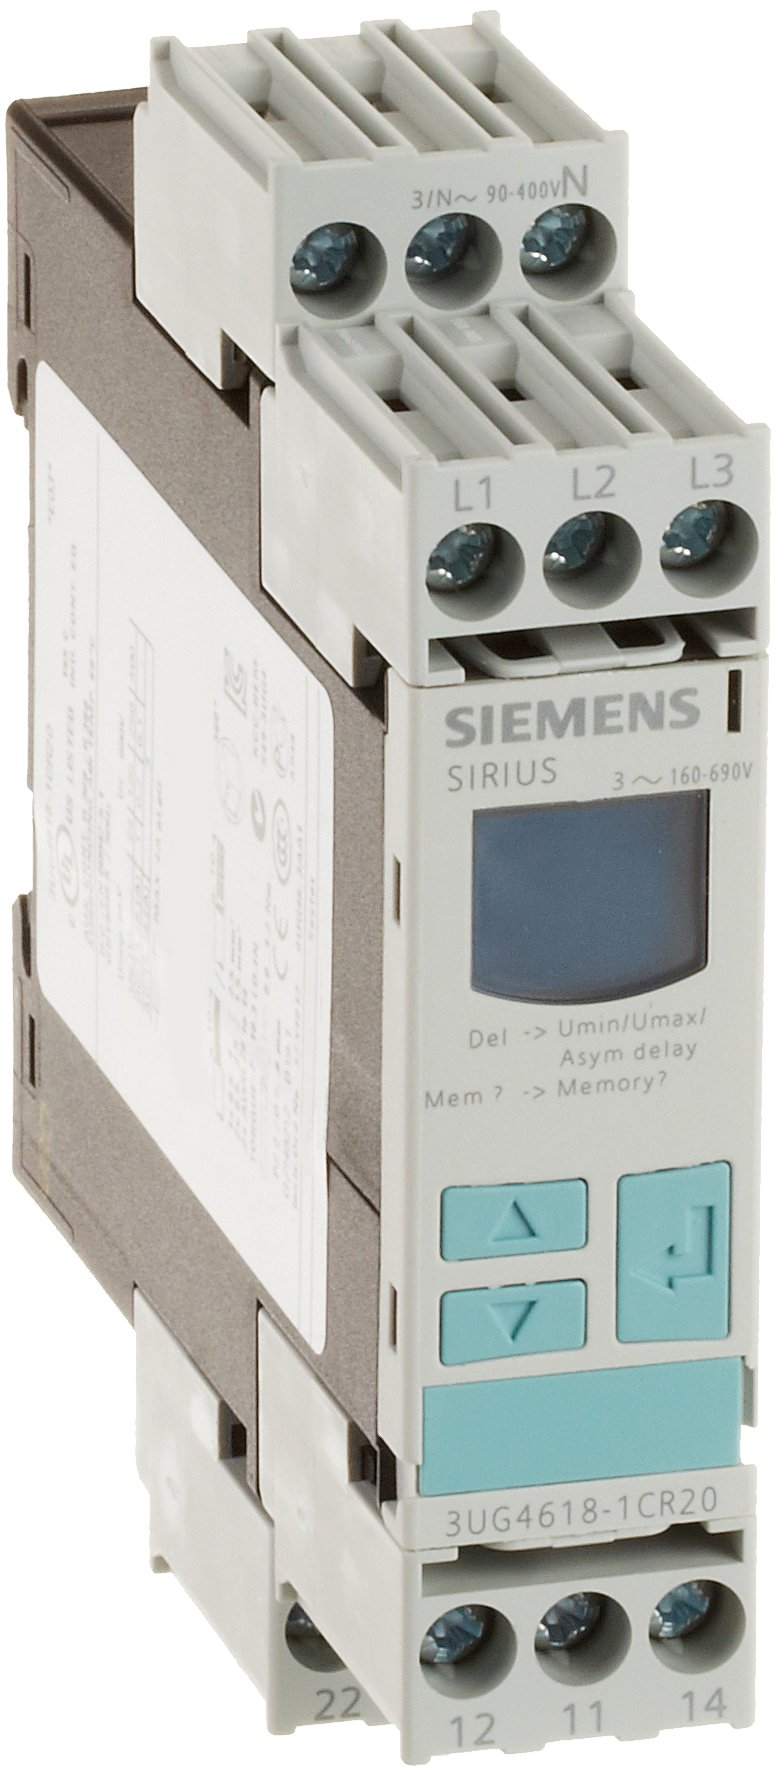 Siemens 3UG4618-1CR20 Monitoring Relay, Three Phase Voltage, Insulation Monitoring, 22.5mm Width, Screw Terminal, 1 CO For Line Faults and 1 W For Phase Sequence Contacts, Off Delay 0-20s Delay Time, 160-690 (90-400 w.r.t. N) Line Supply Voltage